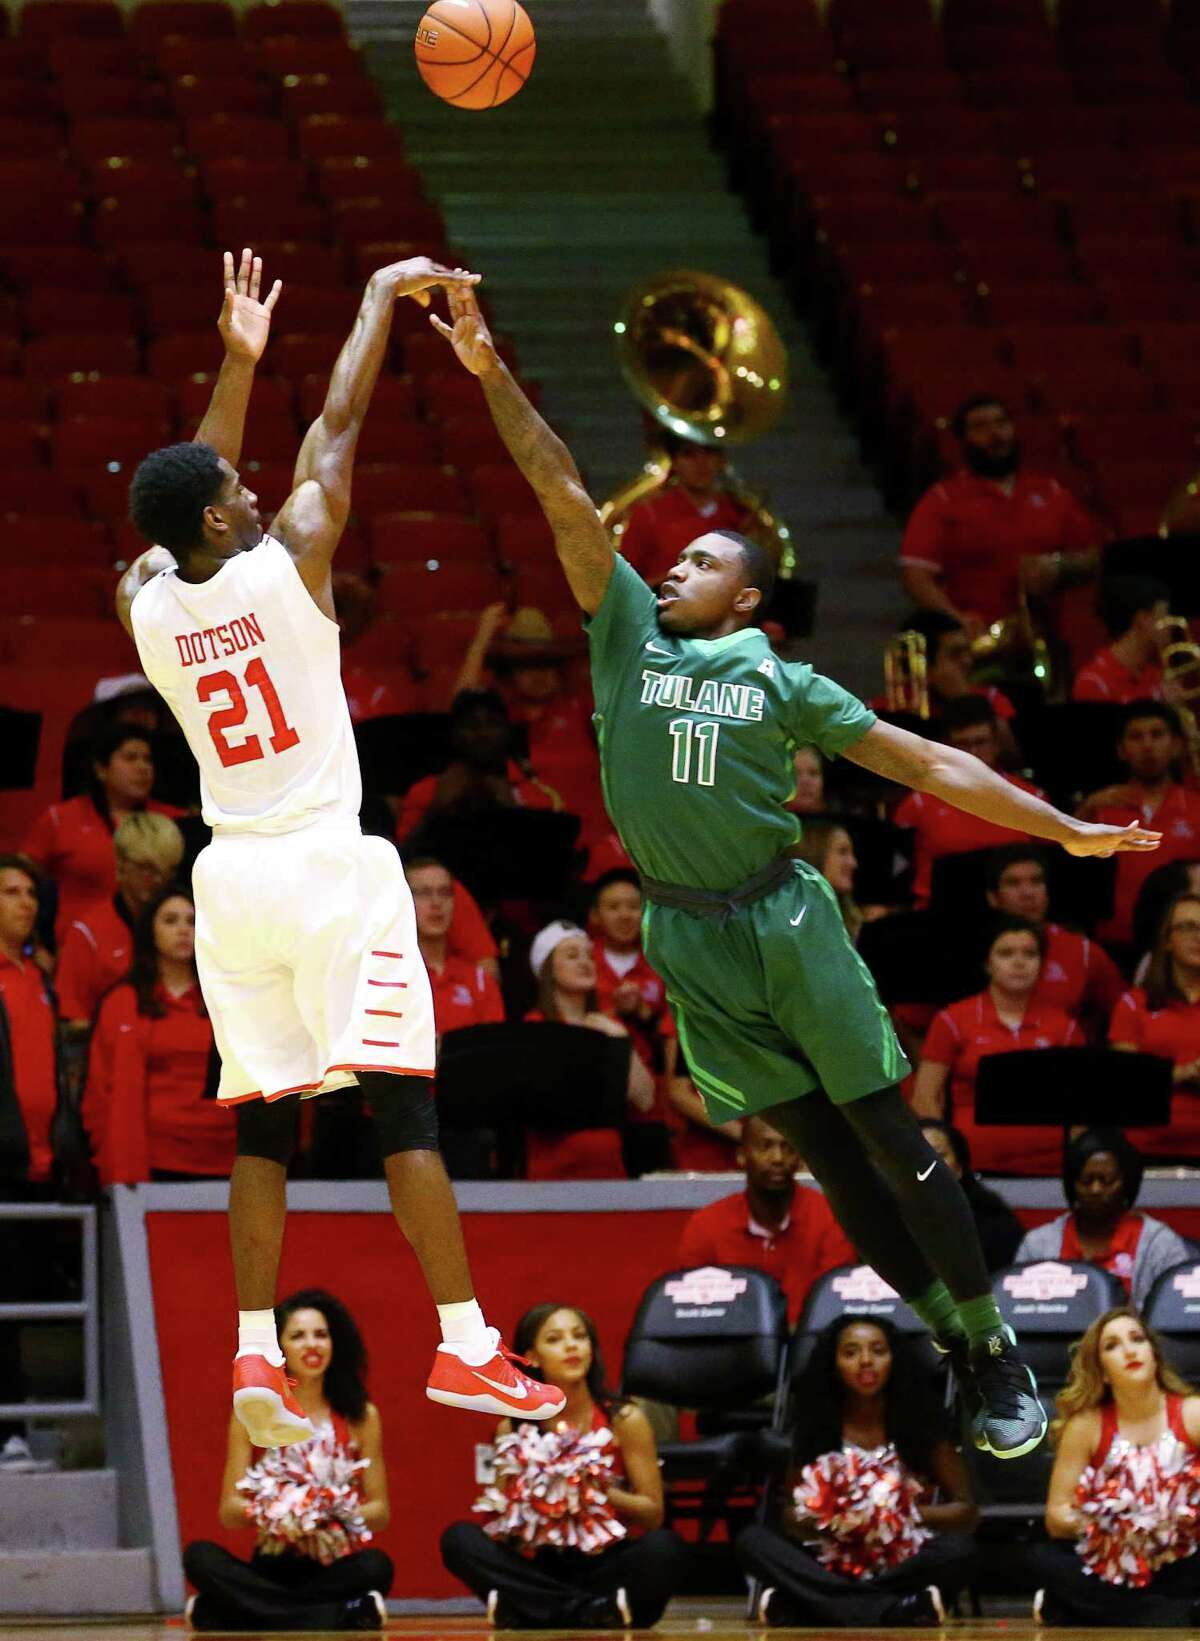 Houston Cougars guard Damyean Dotson (21) shoots over Tulane Green Wave guard Kain Harris (11) during the first half of an NCAA basketball game at Hofheinz Pavillion, Tuesday, Jan. 24, 2017, in Houston.